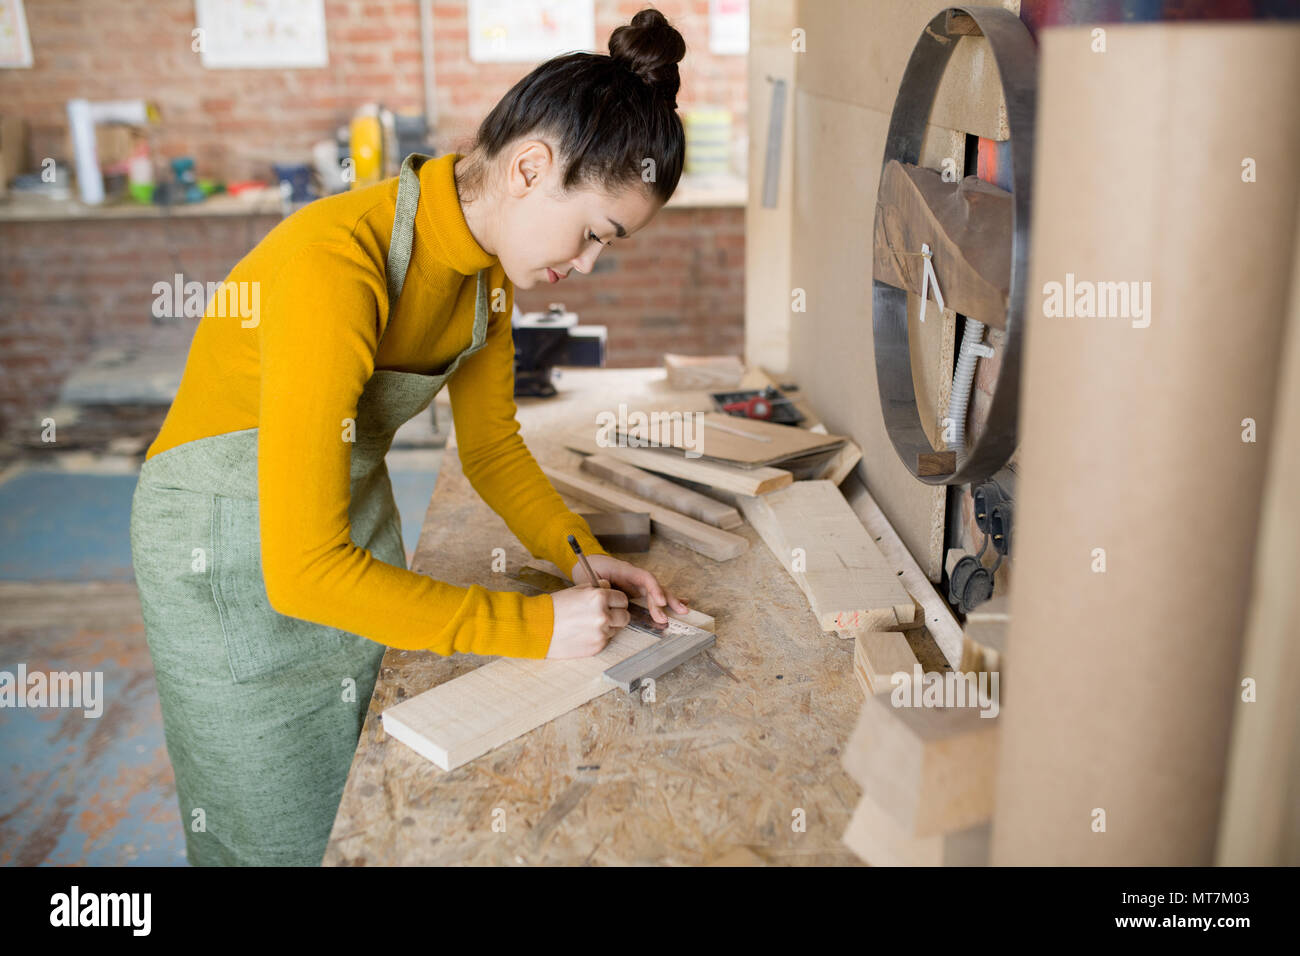 Female Artisan Working with Wood - Stock Image